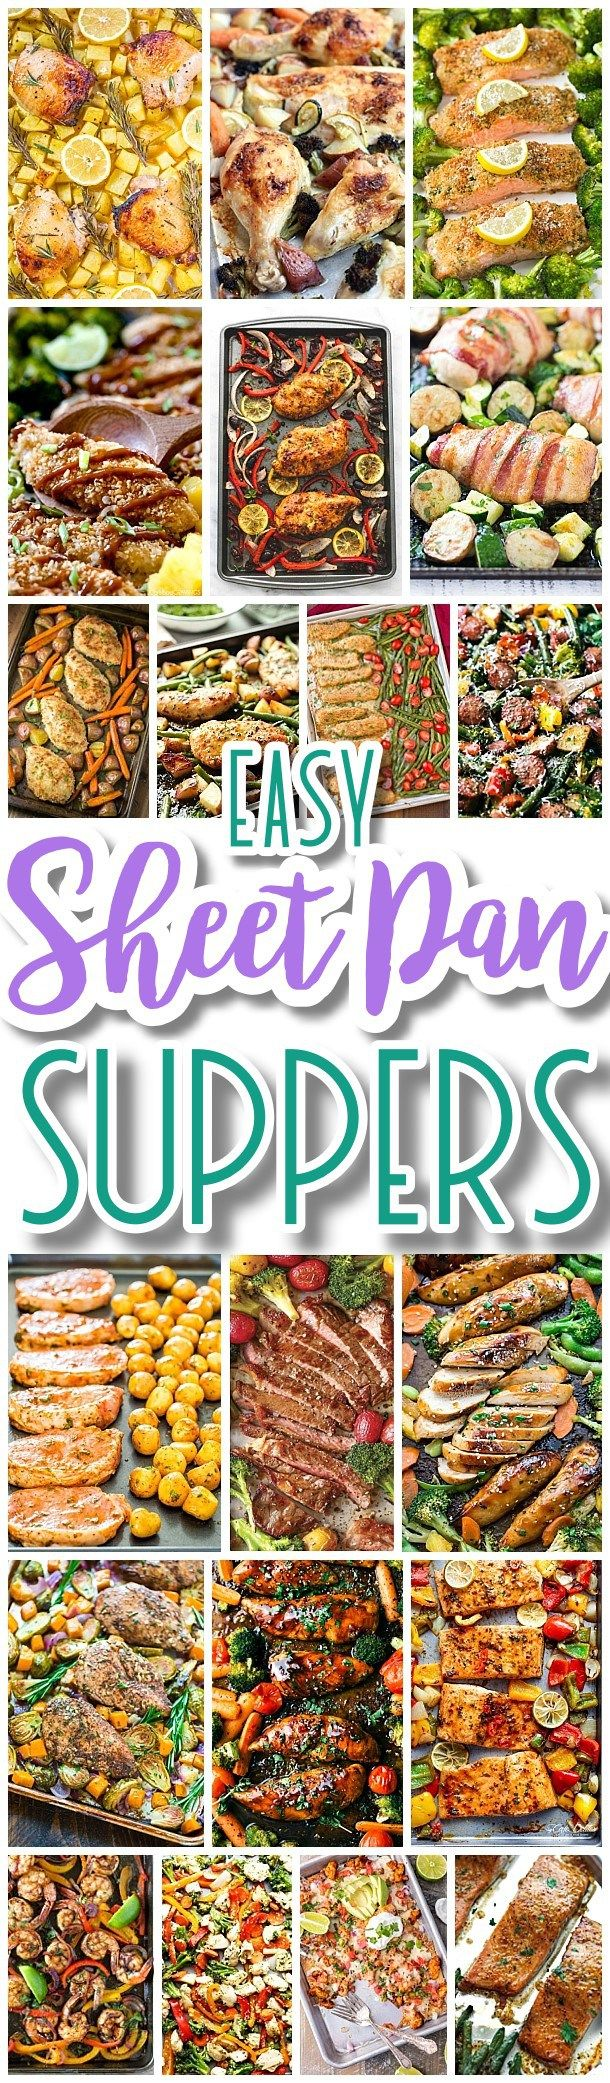 Best 25 supper recipes ideas on pinterest simple supper ideas the best sheet pan suppers recipes easy and quick baked family lunch and simple dinner meal ideas using only one baking sheet pan forumfinder Choice Image